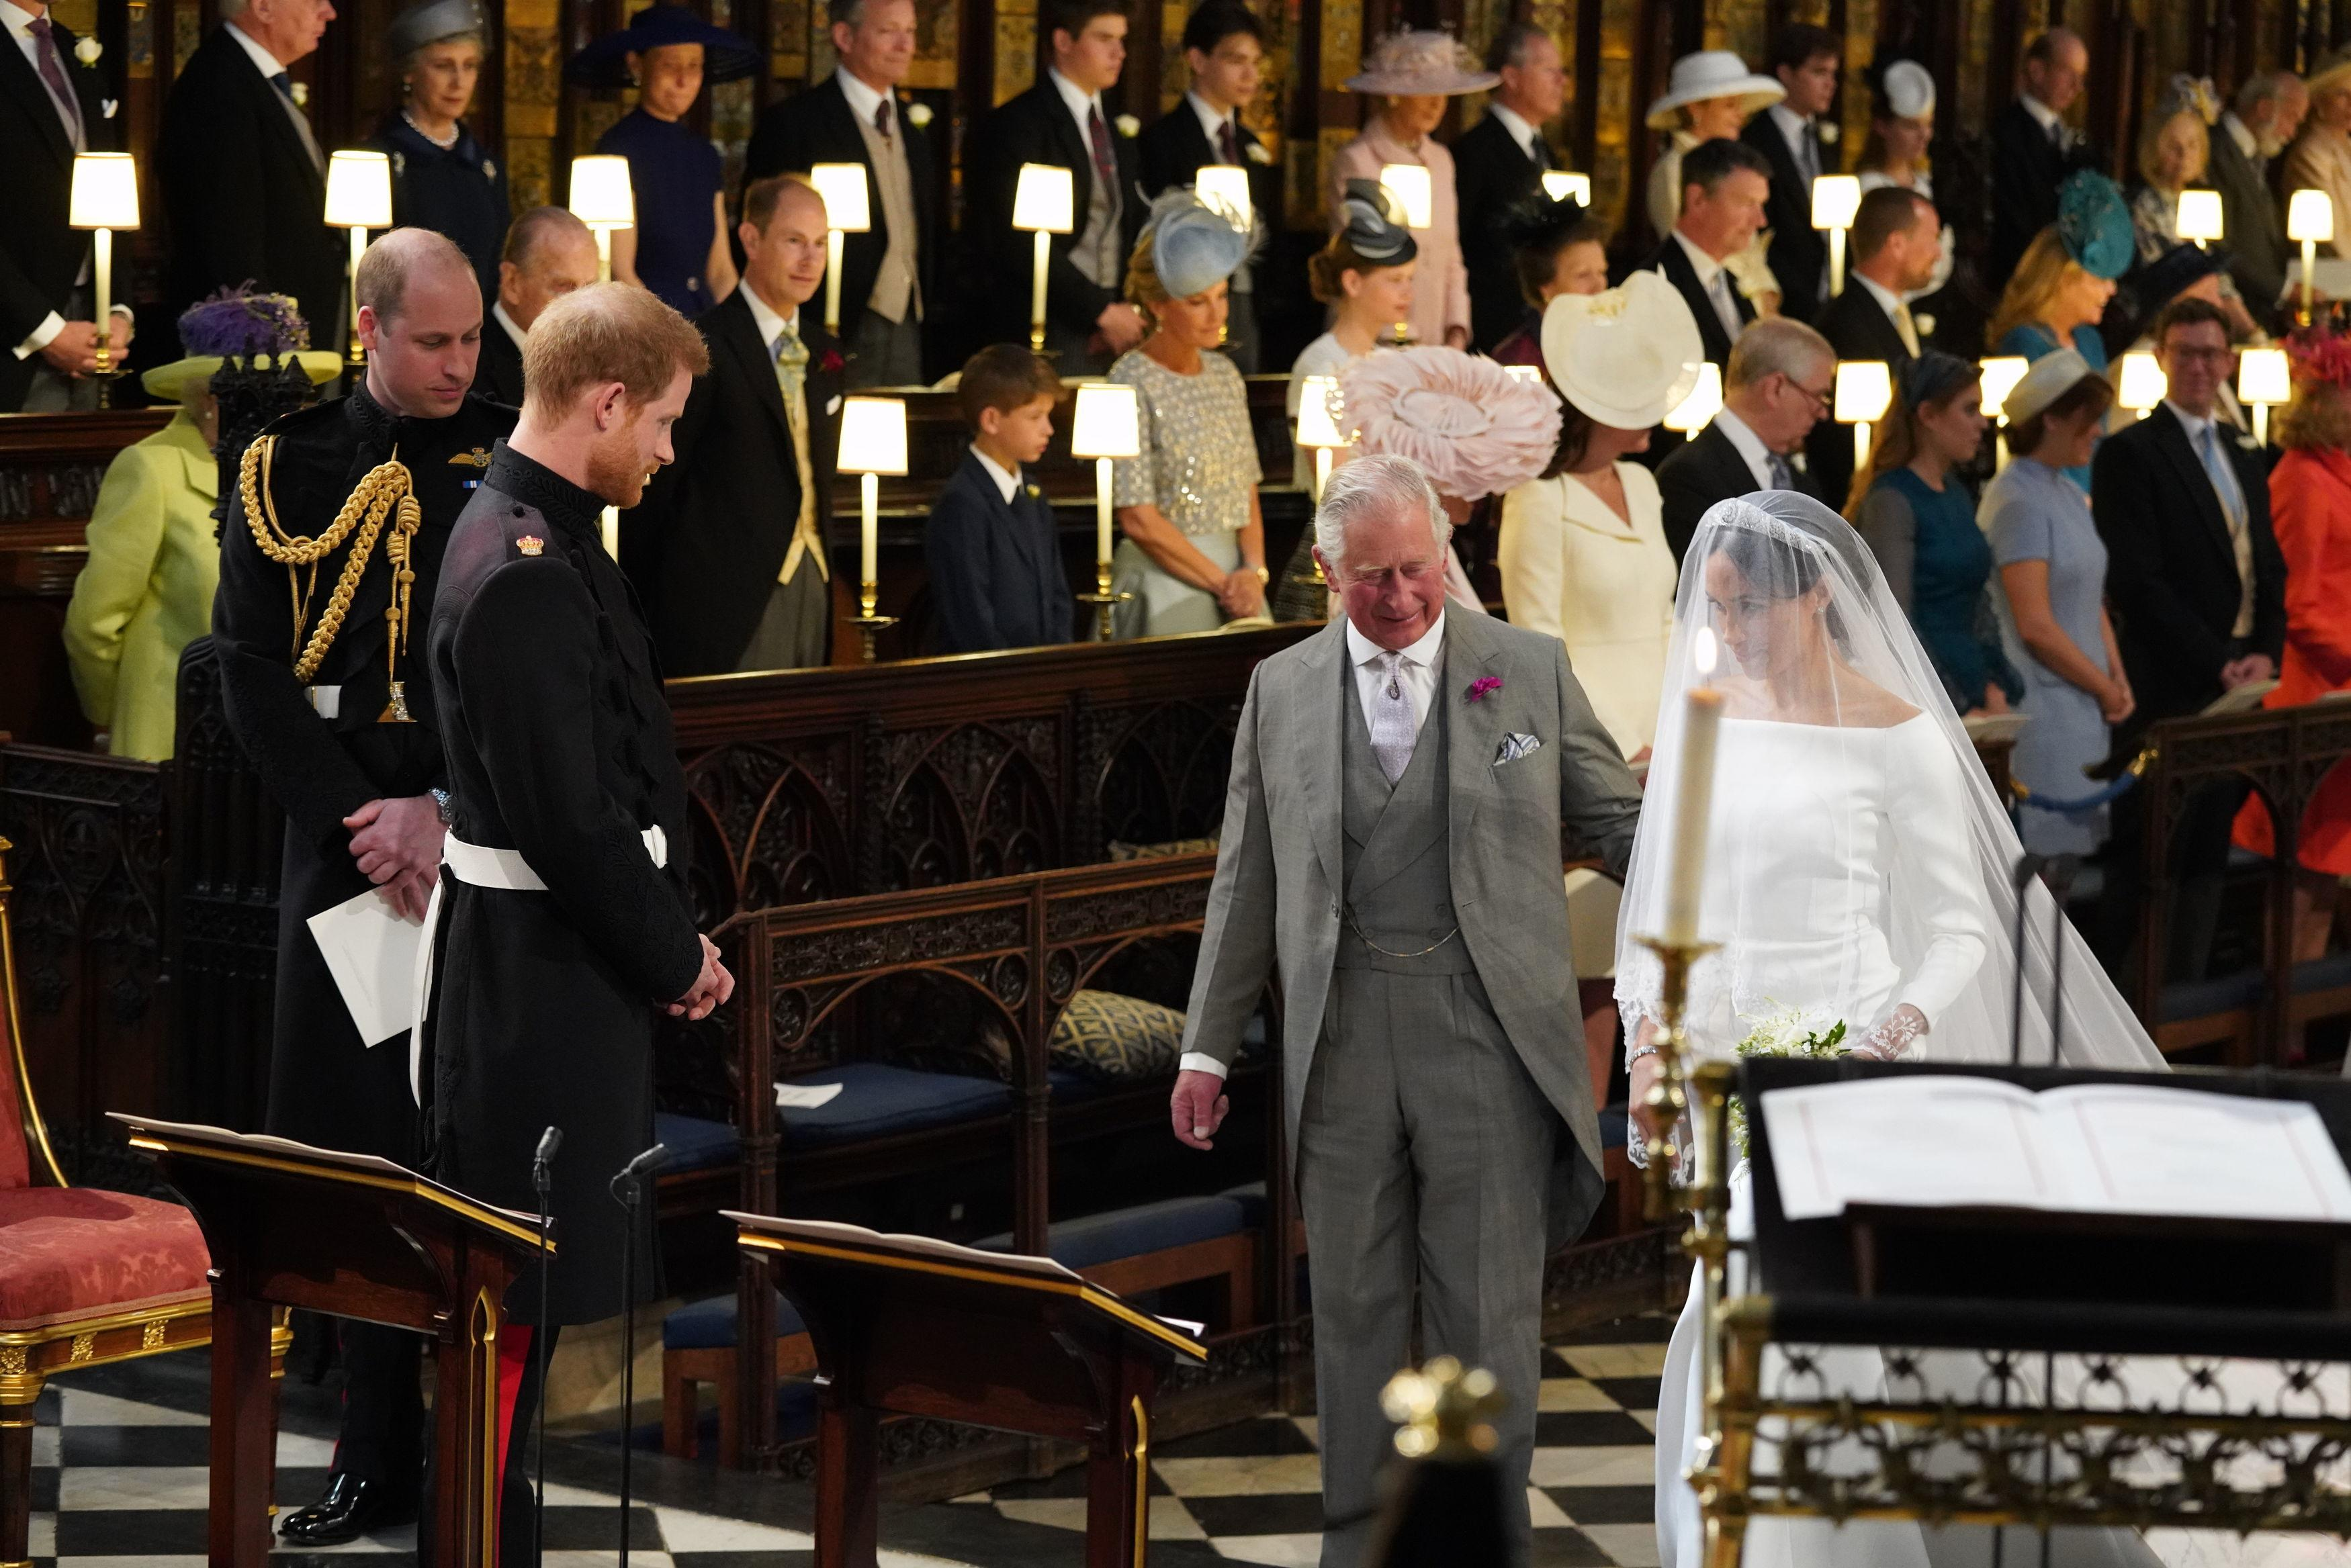 Prince Charles leads Meghan Markle up the aisle (Picture: PA)